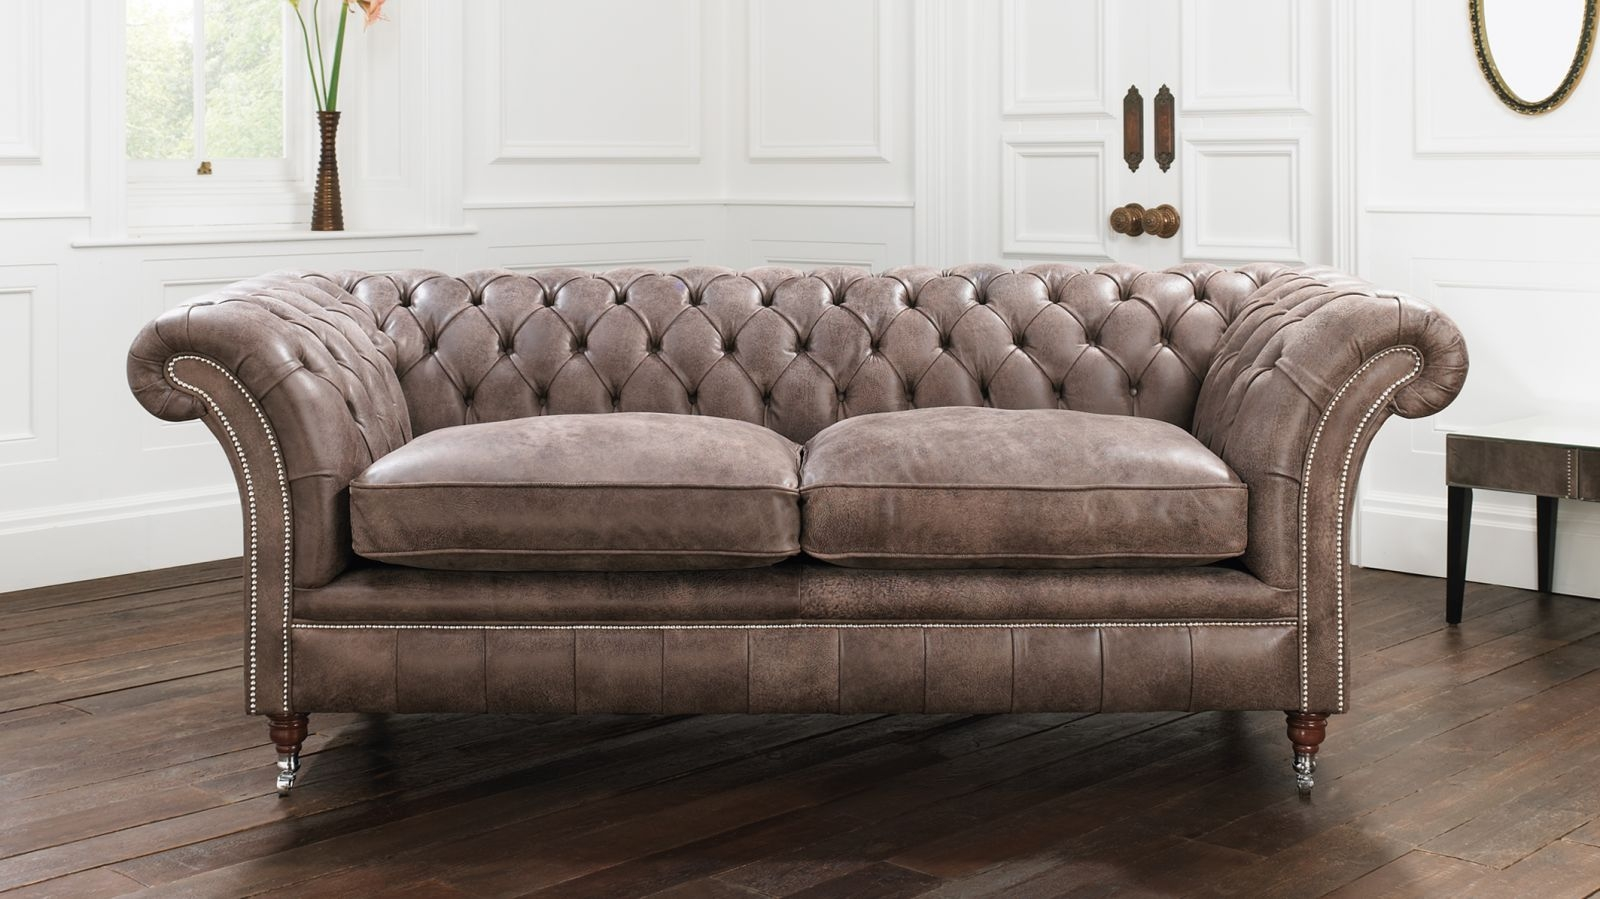 56 Chesterfield Sofas Chesterfield Sofas Sofas Beds Sofa Beds Pertaining To Leather Chesterfield Sofas (Image 4 of 15)